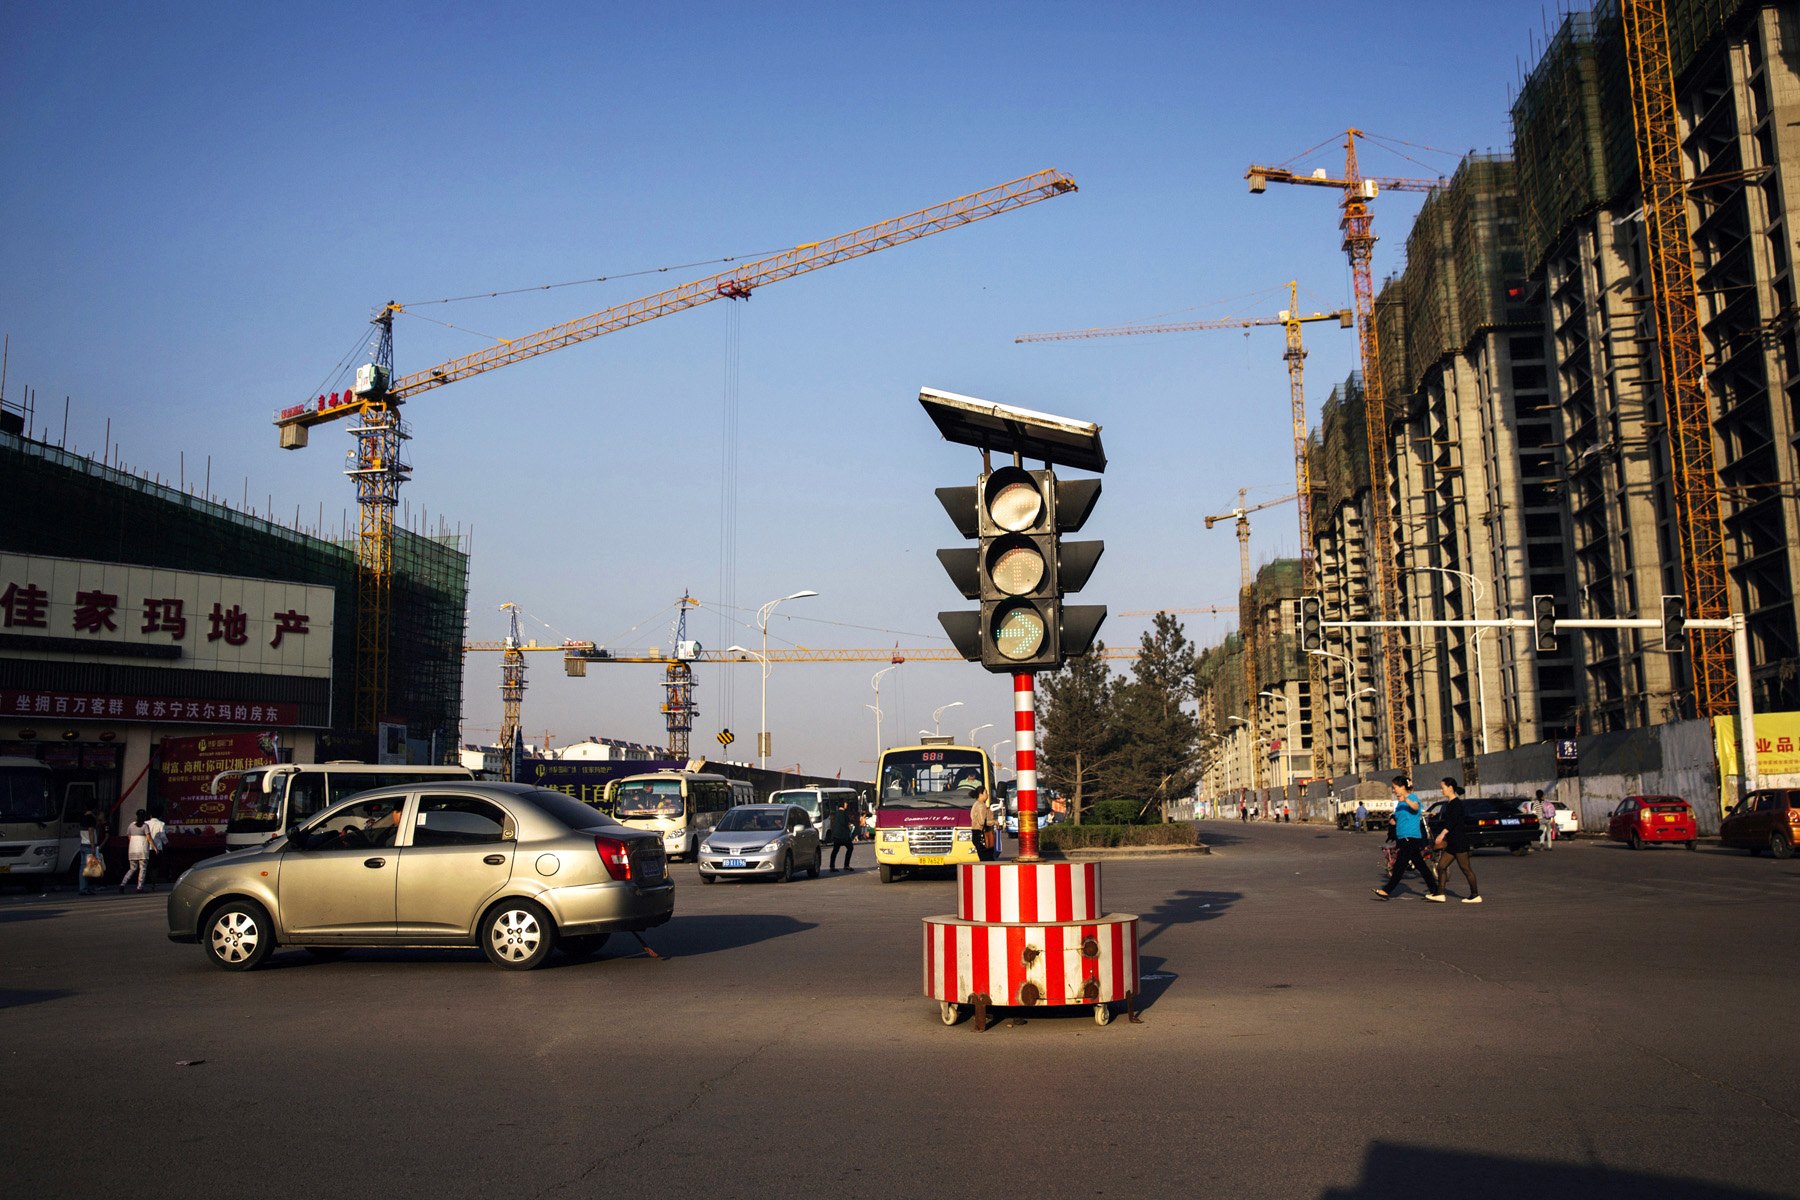 Traffic is seen in front of a construction site in New Ping Wang